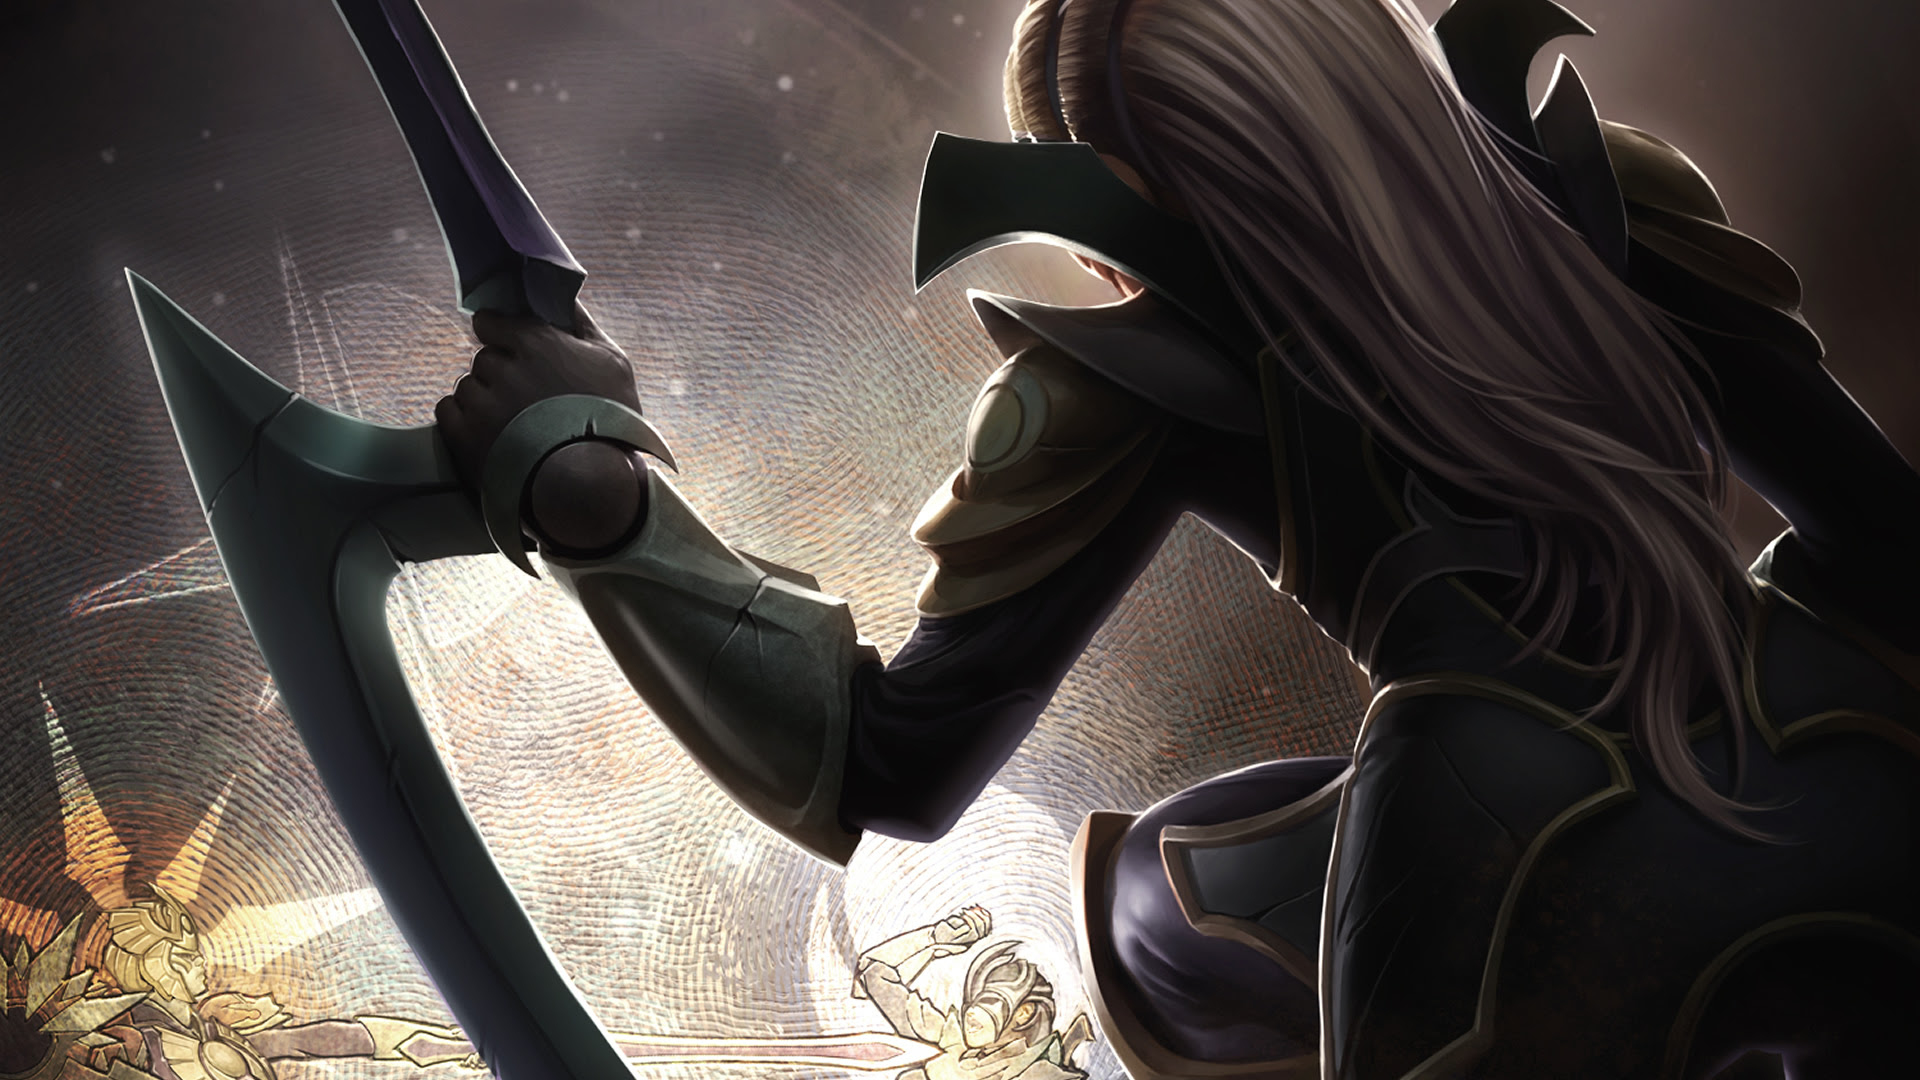 Diana League Of Legends Wallpapers